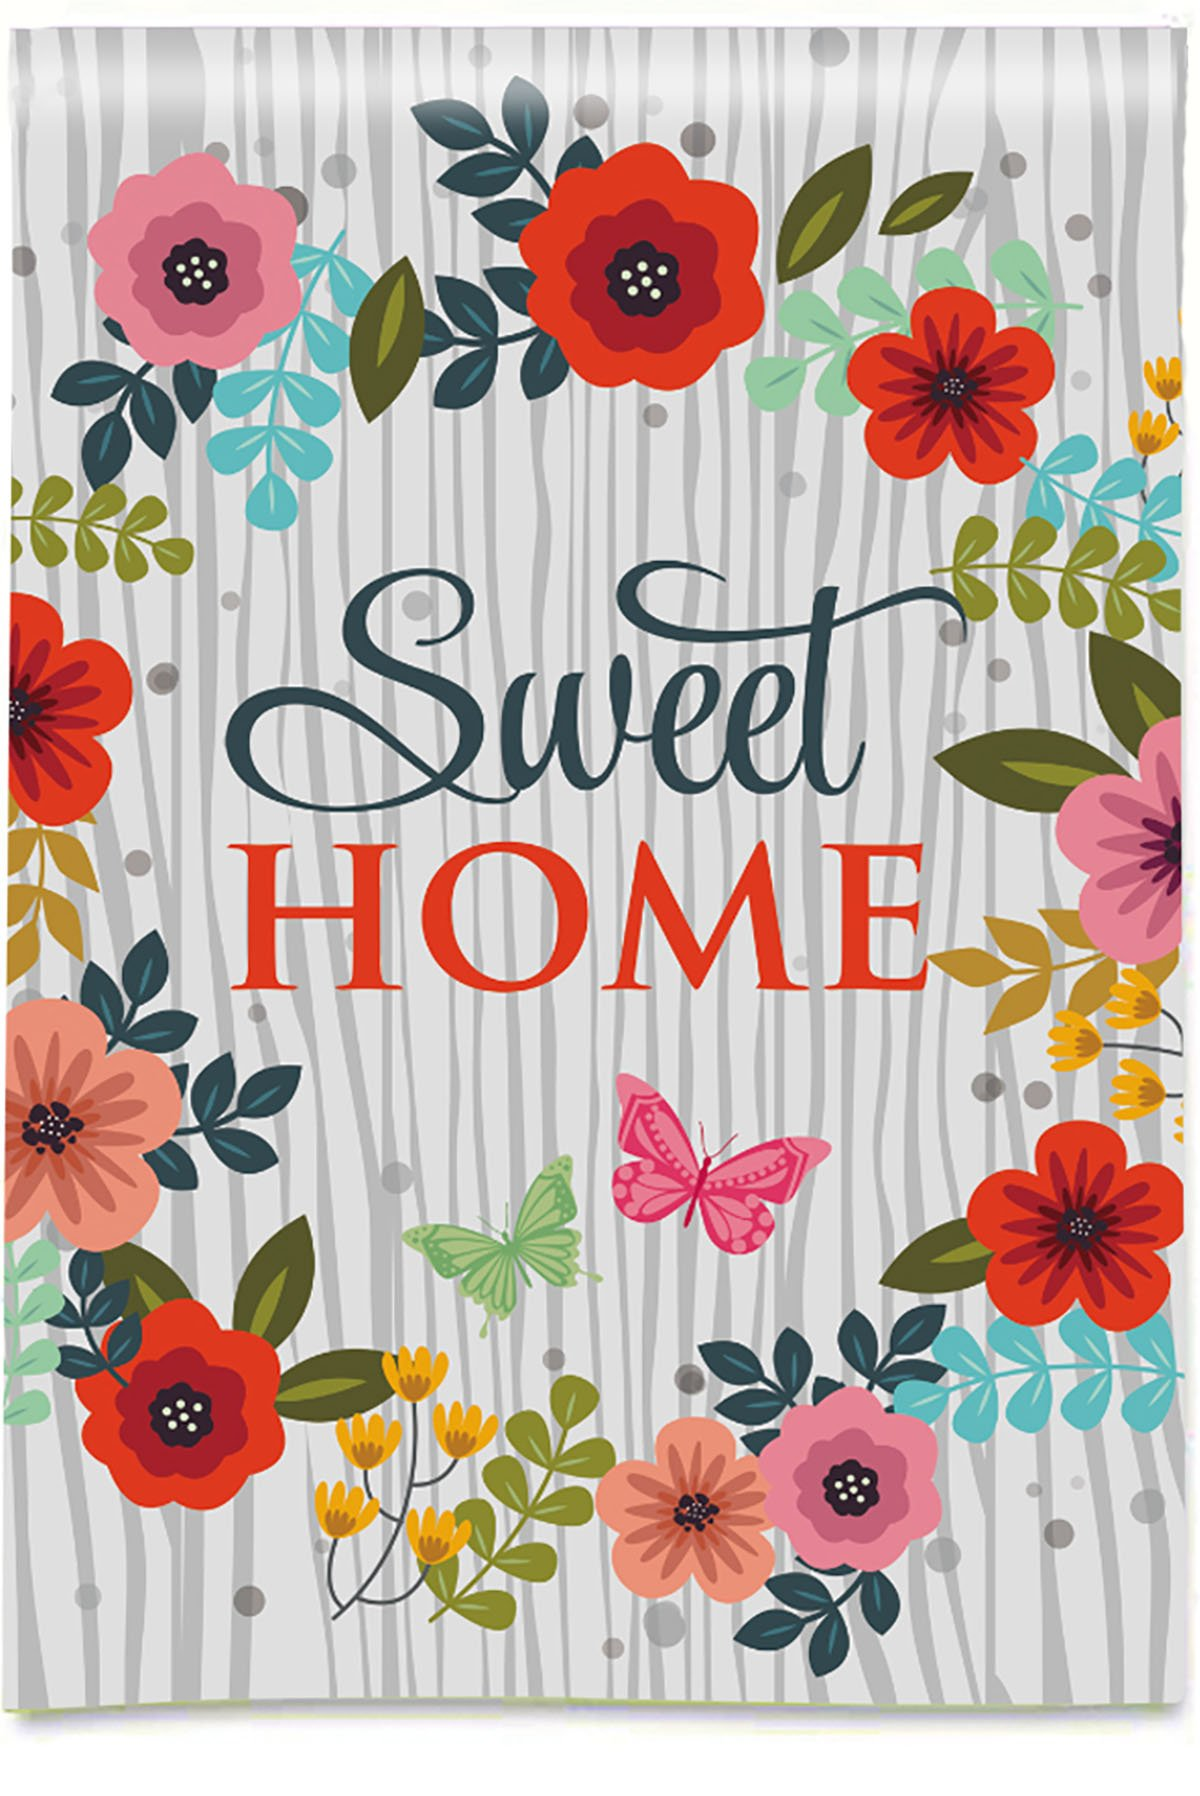 Morigins Sweet Home House Flag Flowers Double Sided Spring Summer Yard Outdoor Decorative 28 X 40 Inch Buy Online In Saint Lucia At Saintlucia Desertcart Com Productid 127660620